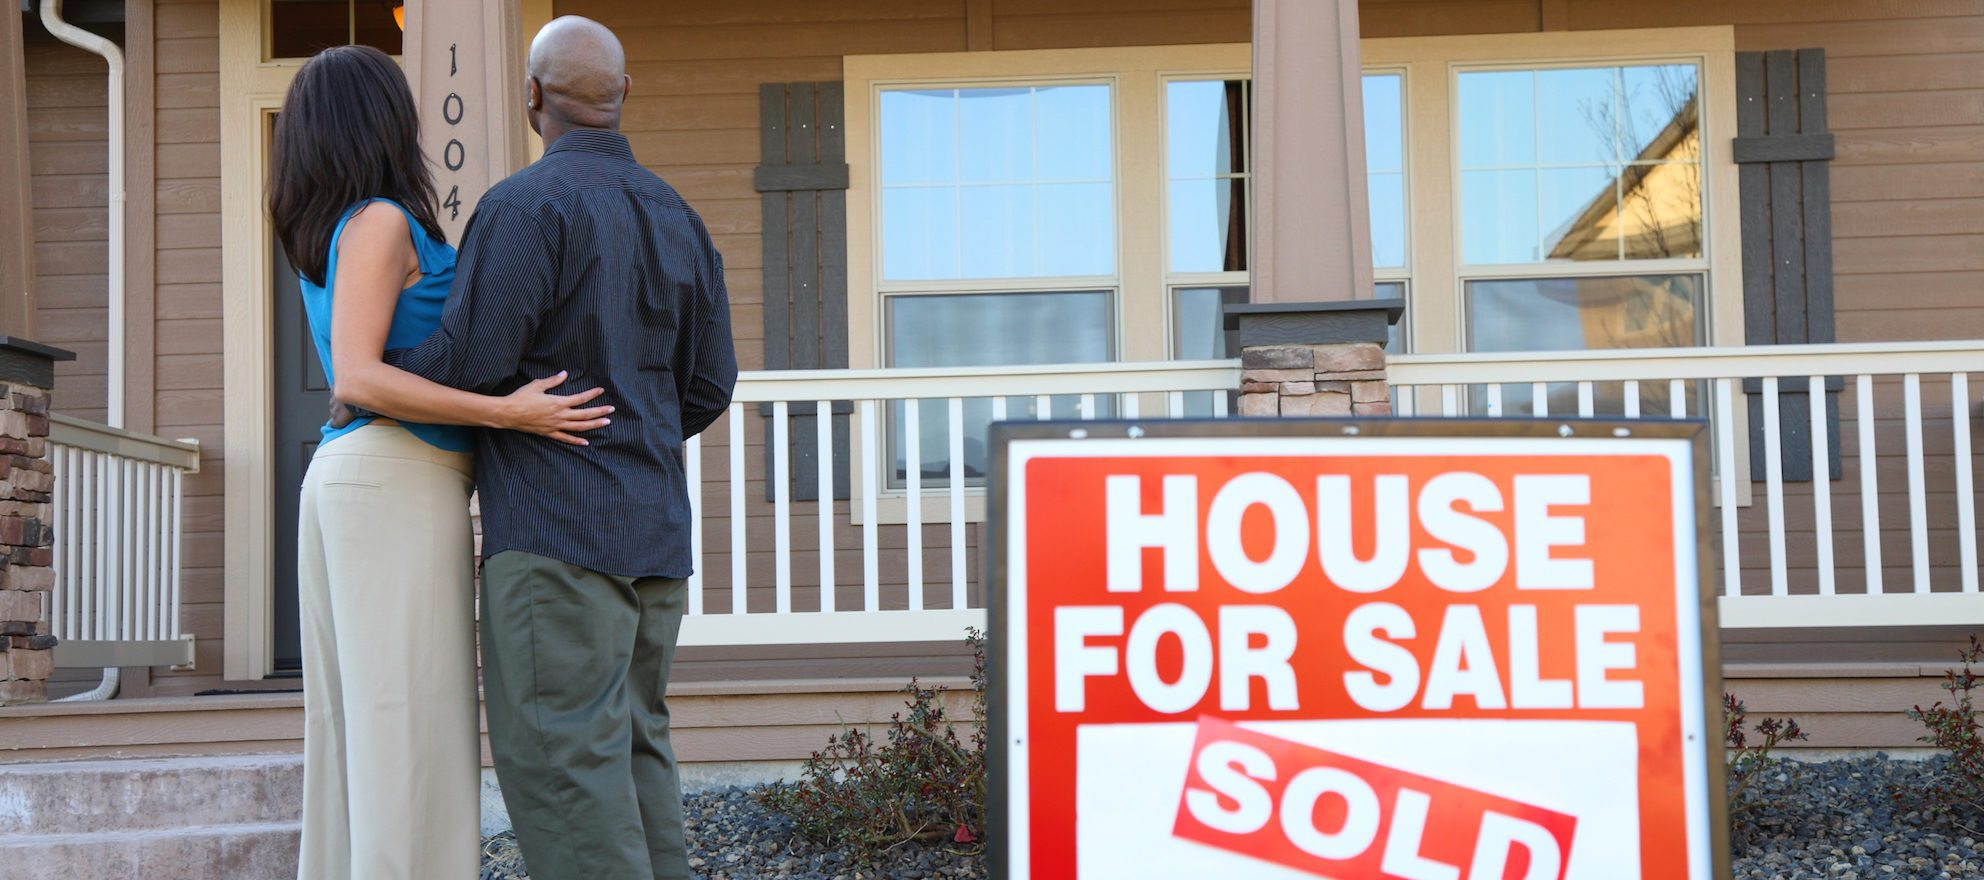 Is the recent rise in homeownership a good thing?